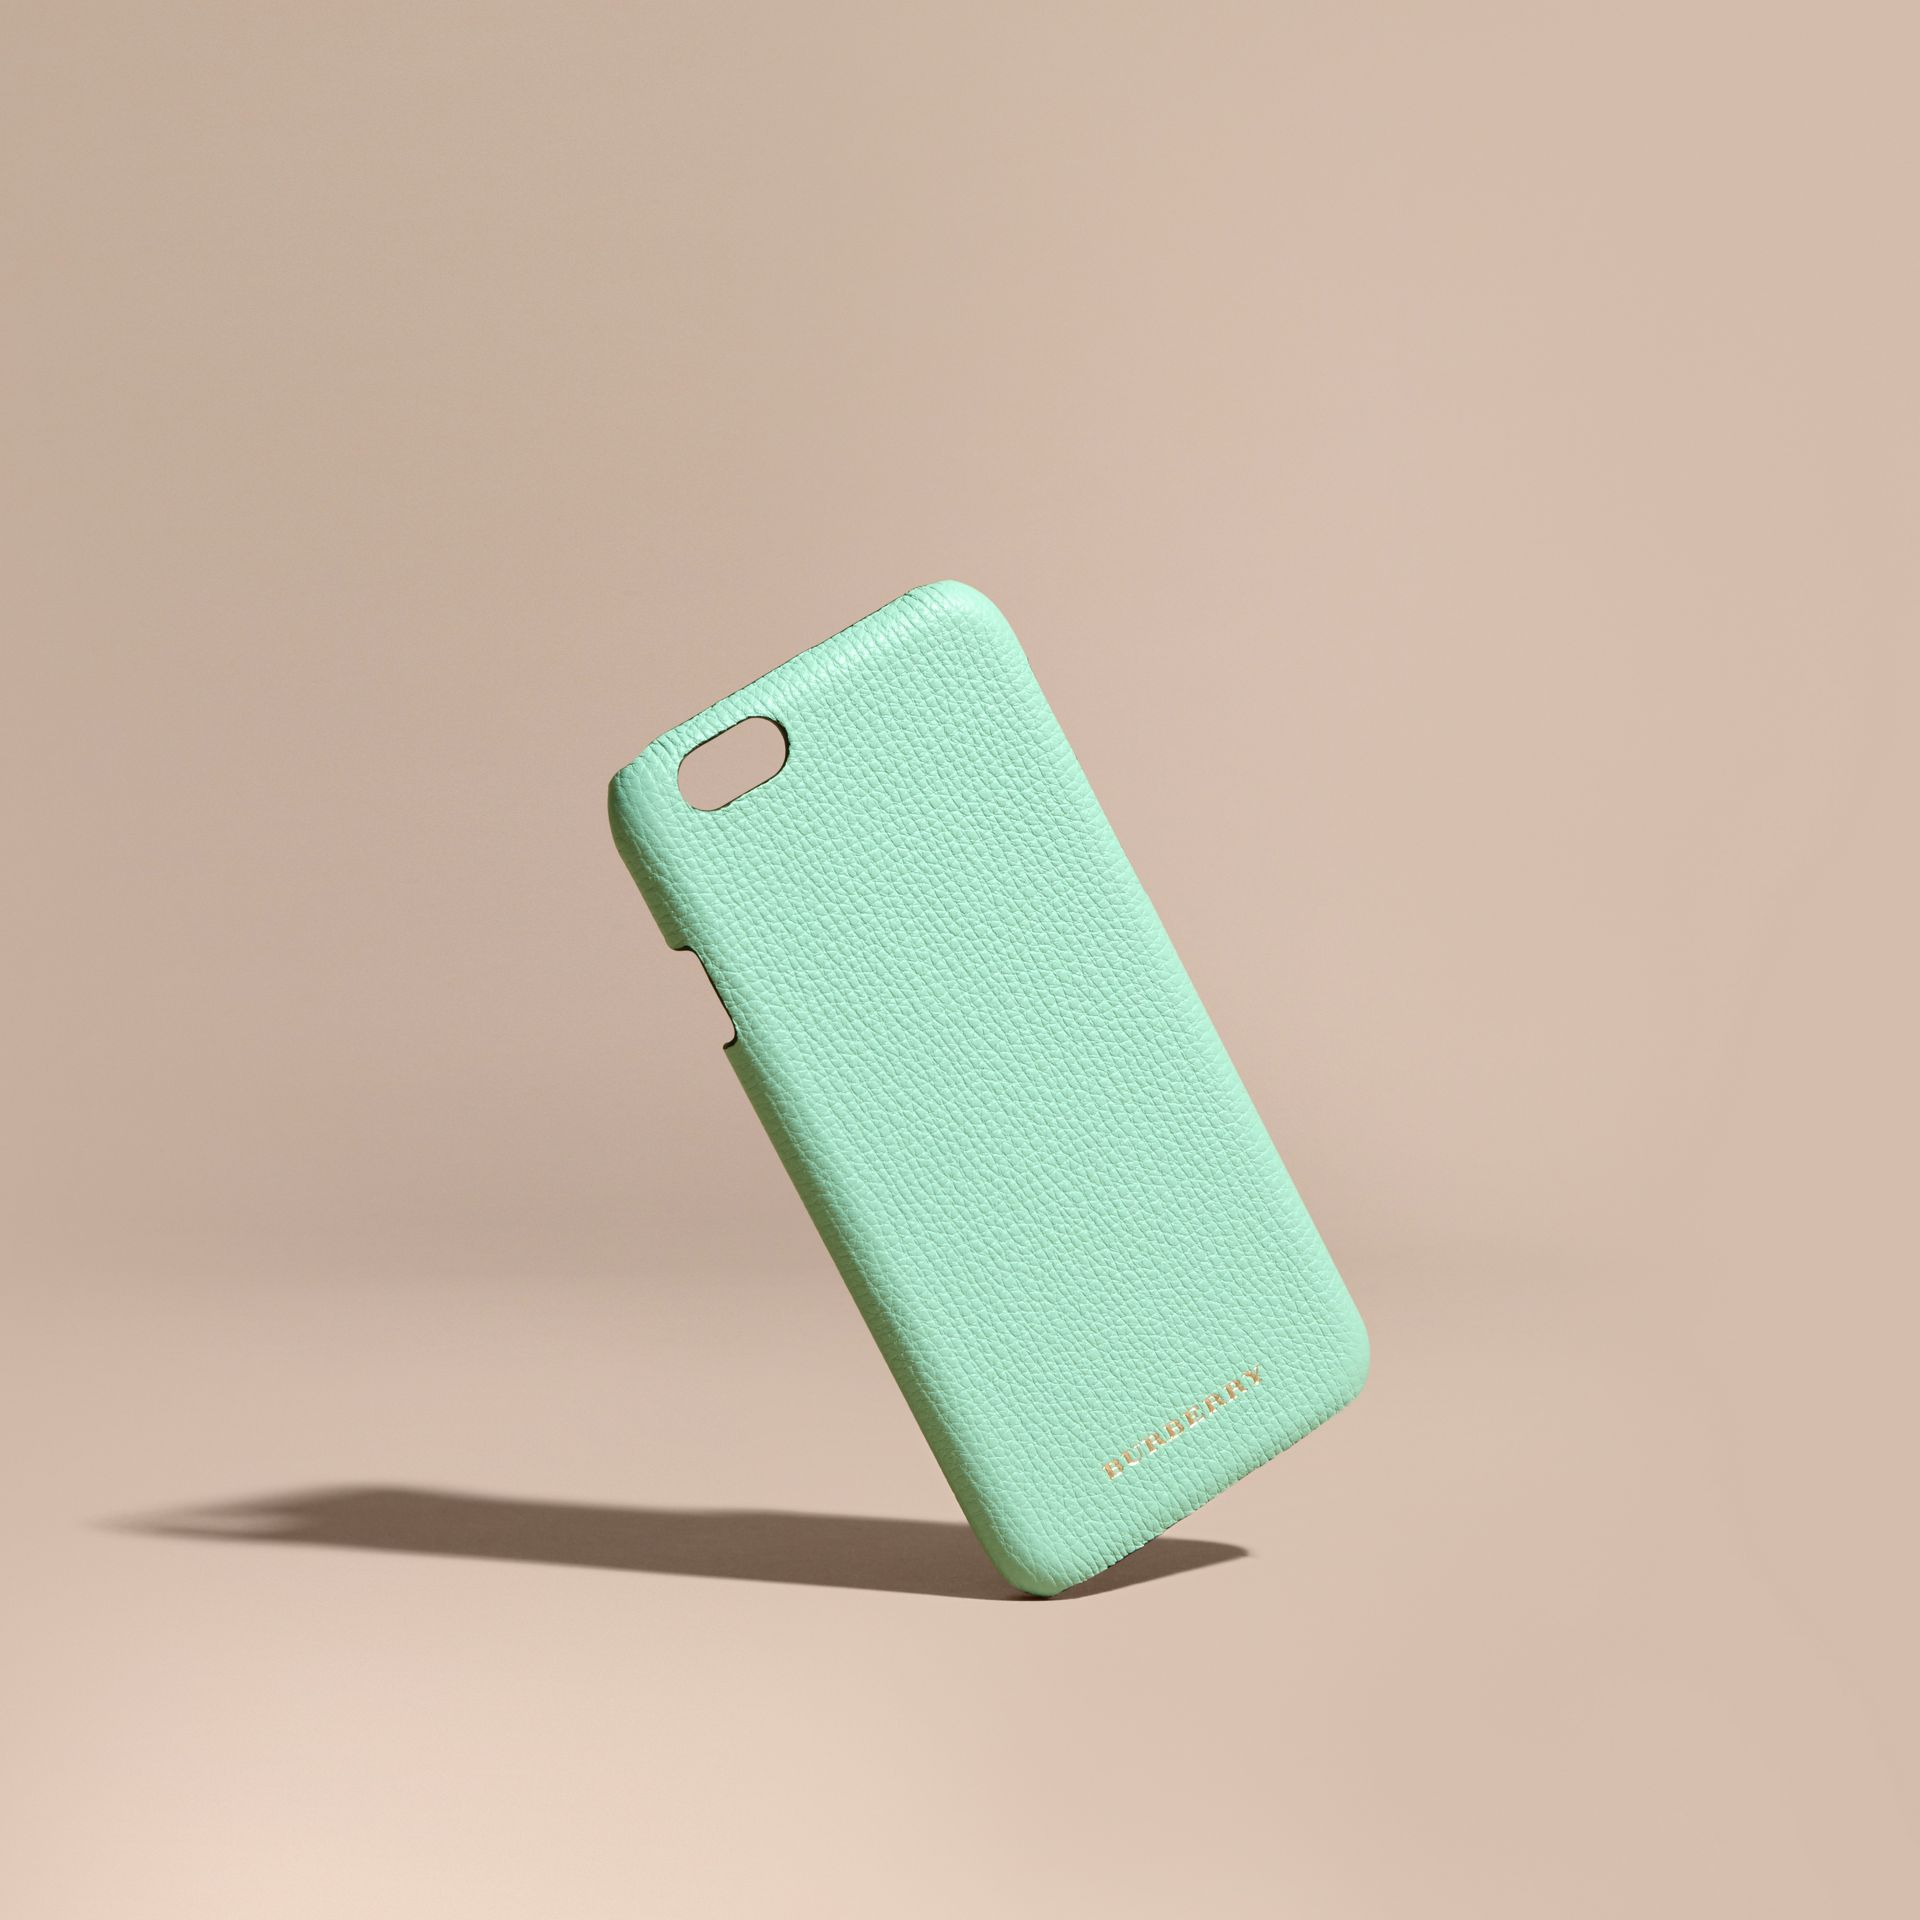 Grainy Leather iPhone 6 Case in Light Mint - Women | Burberry Hong Kong - gallery image 1